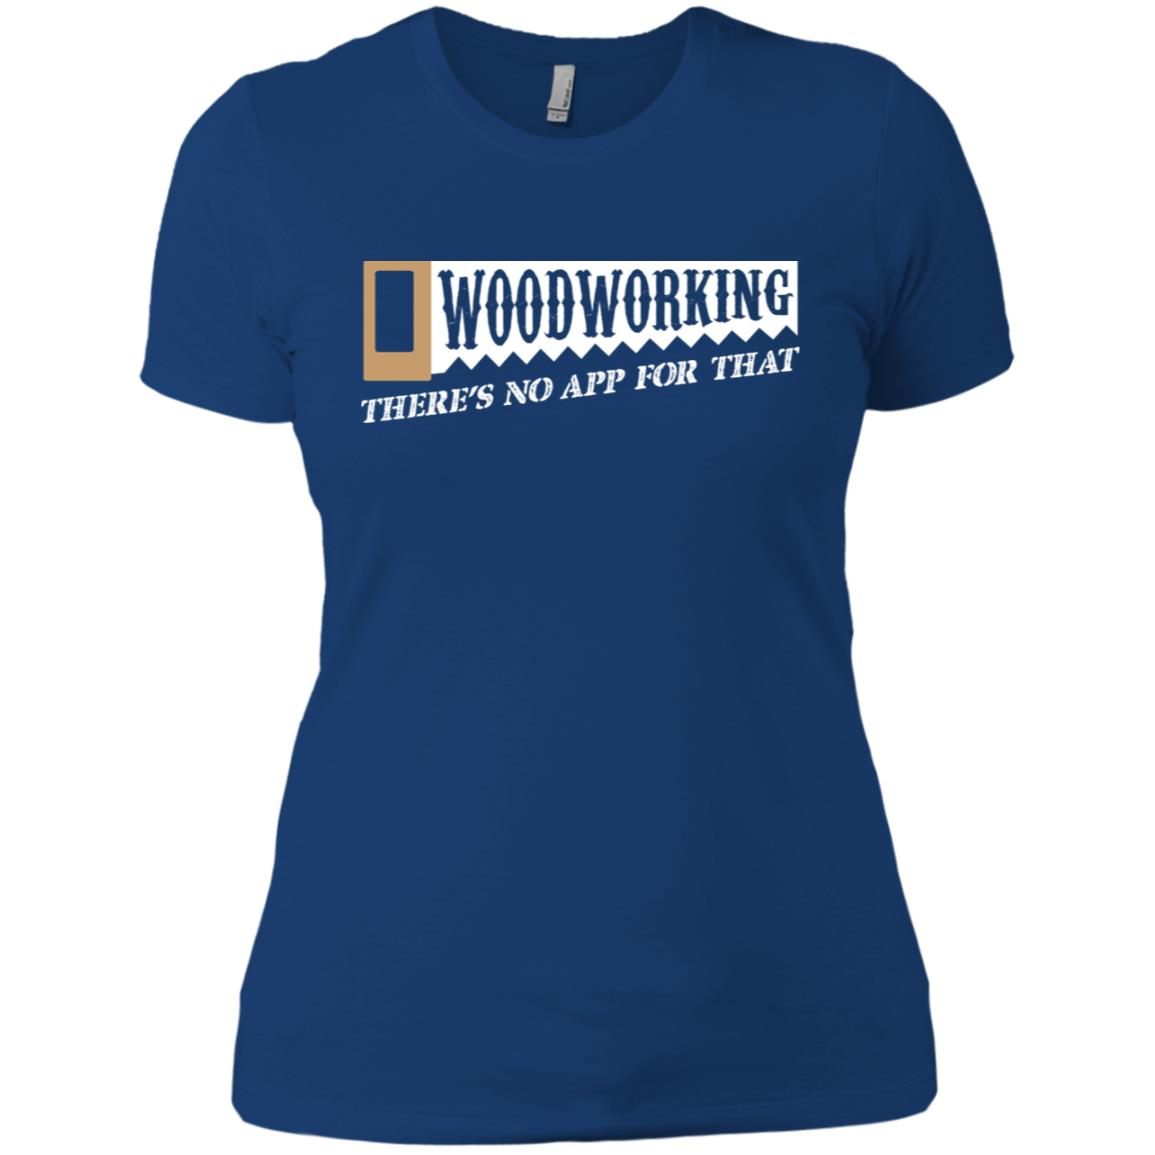 Woodworking There's No App For That Women Short Sleeve